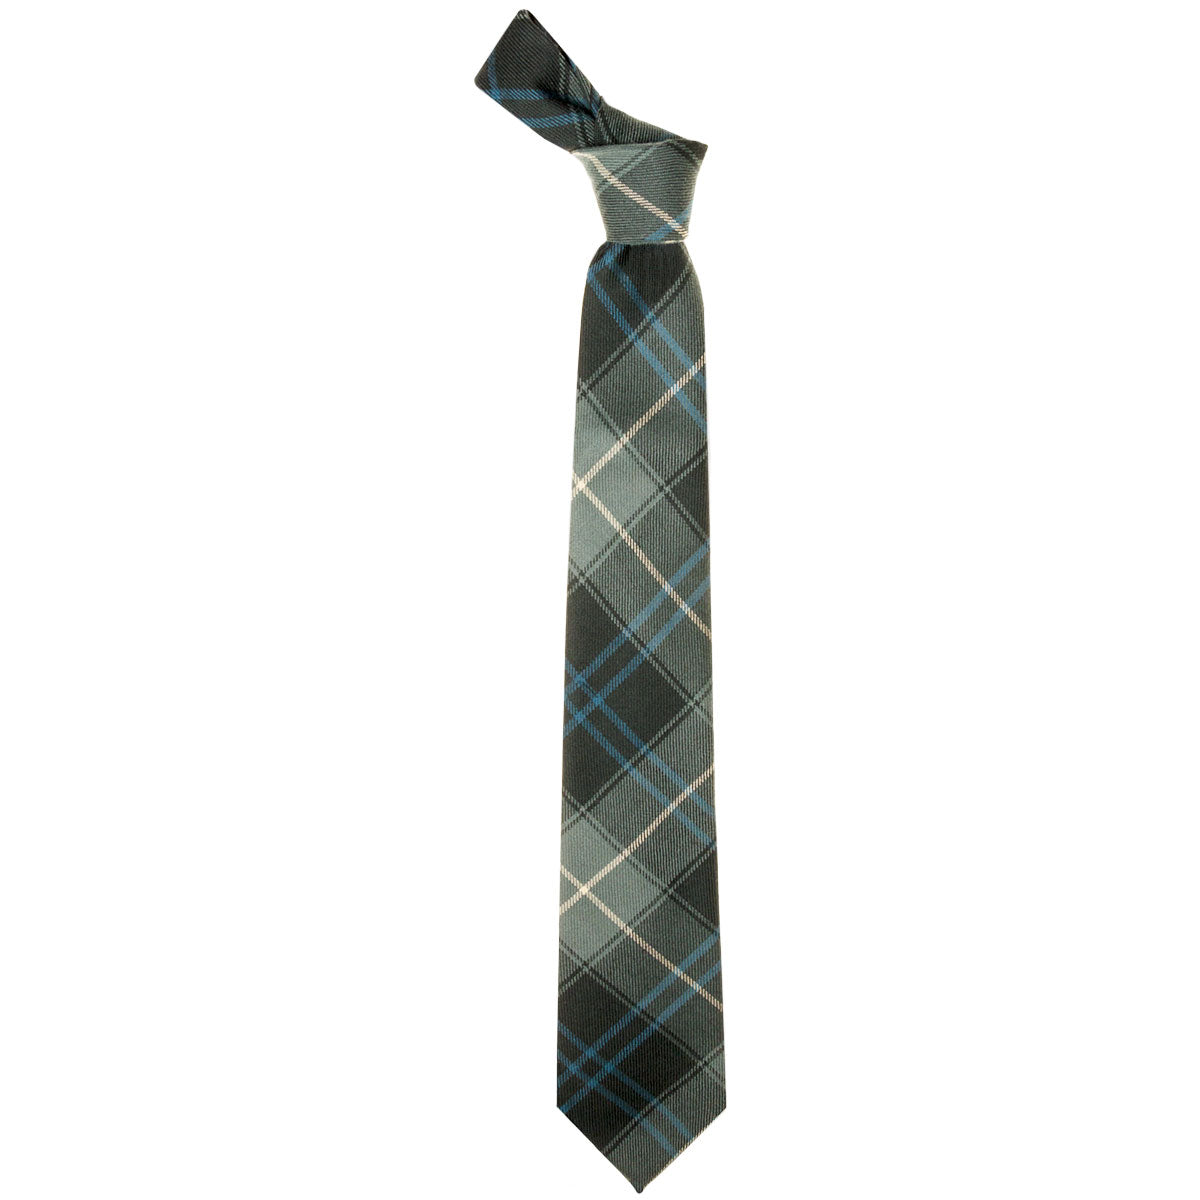 Patriot Weathered Tartan Tie from Anderson Kilts